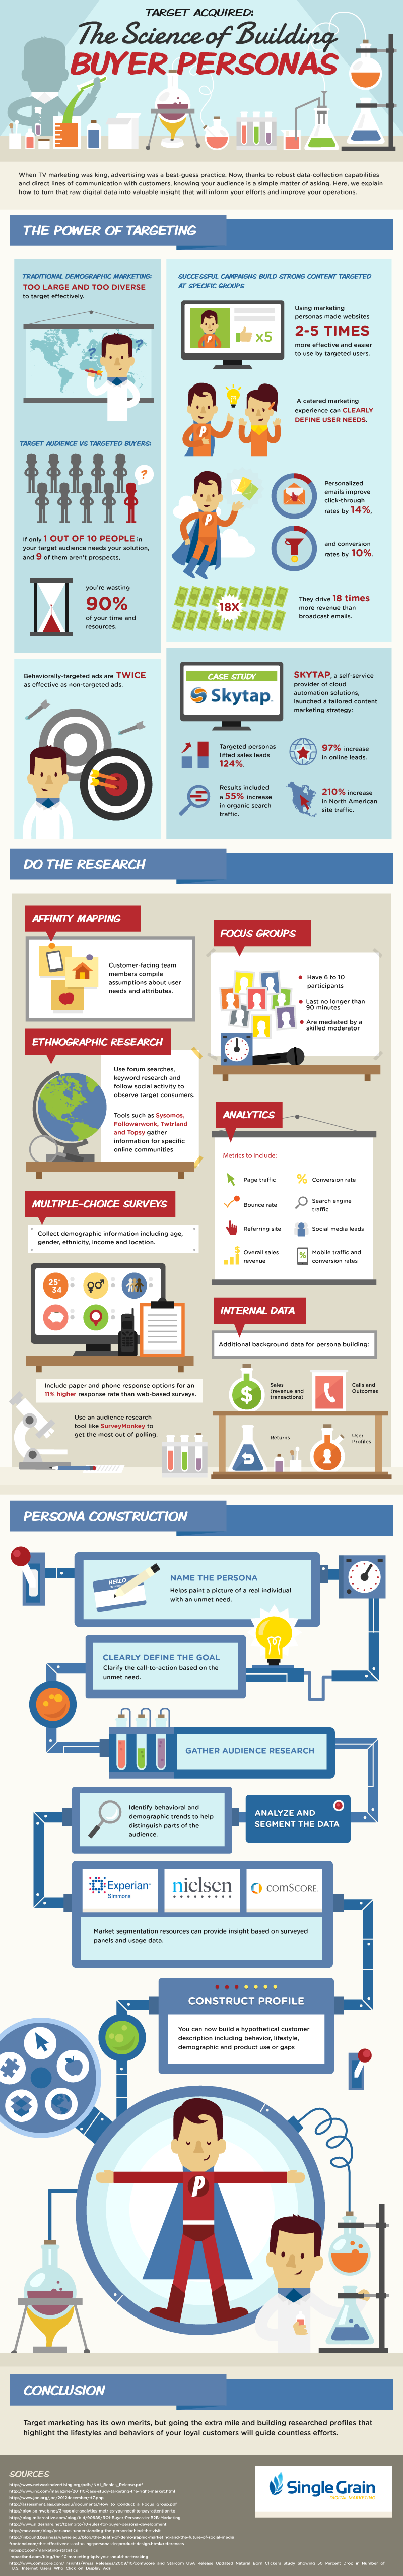 target-acquired-science-of-building-buyer-personas-infographic